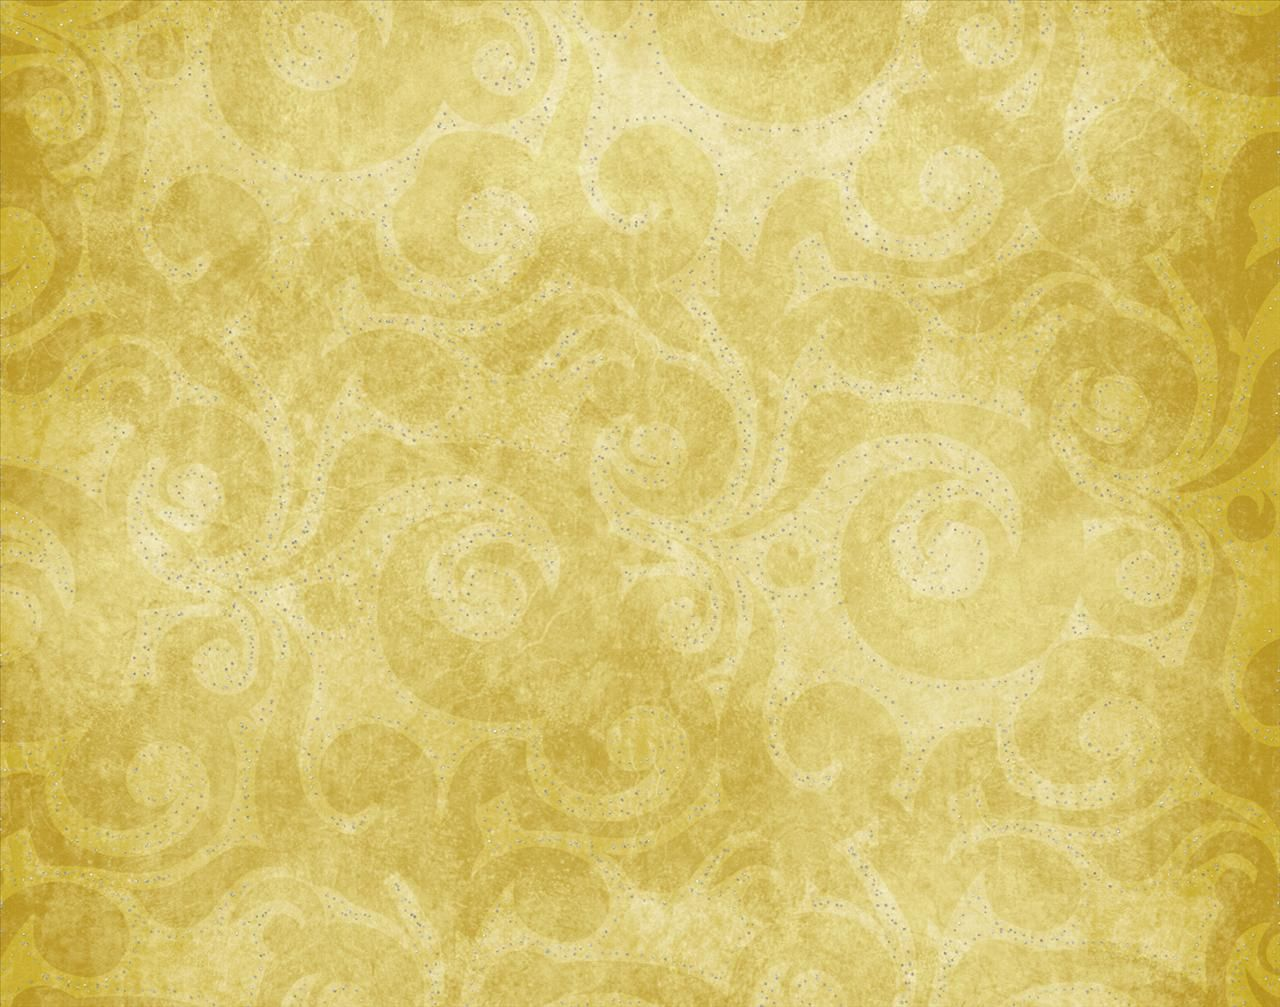 Glowing Golden Backgrounds Photos For Posters Flyers